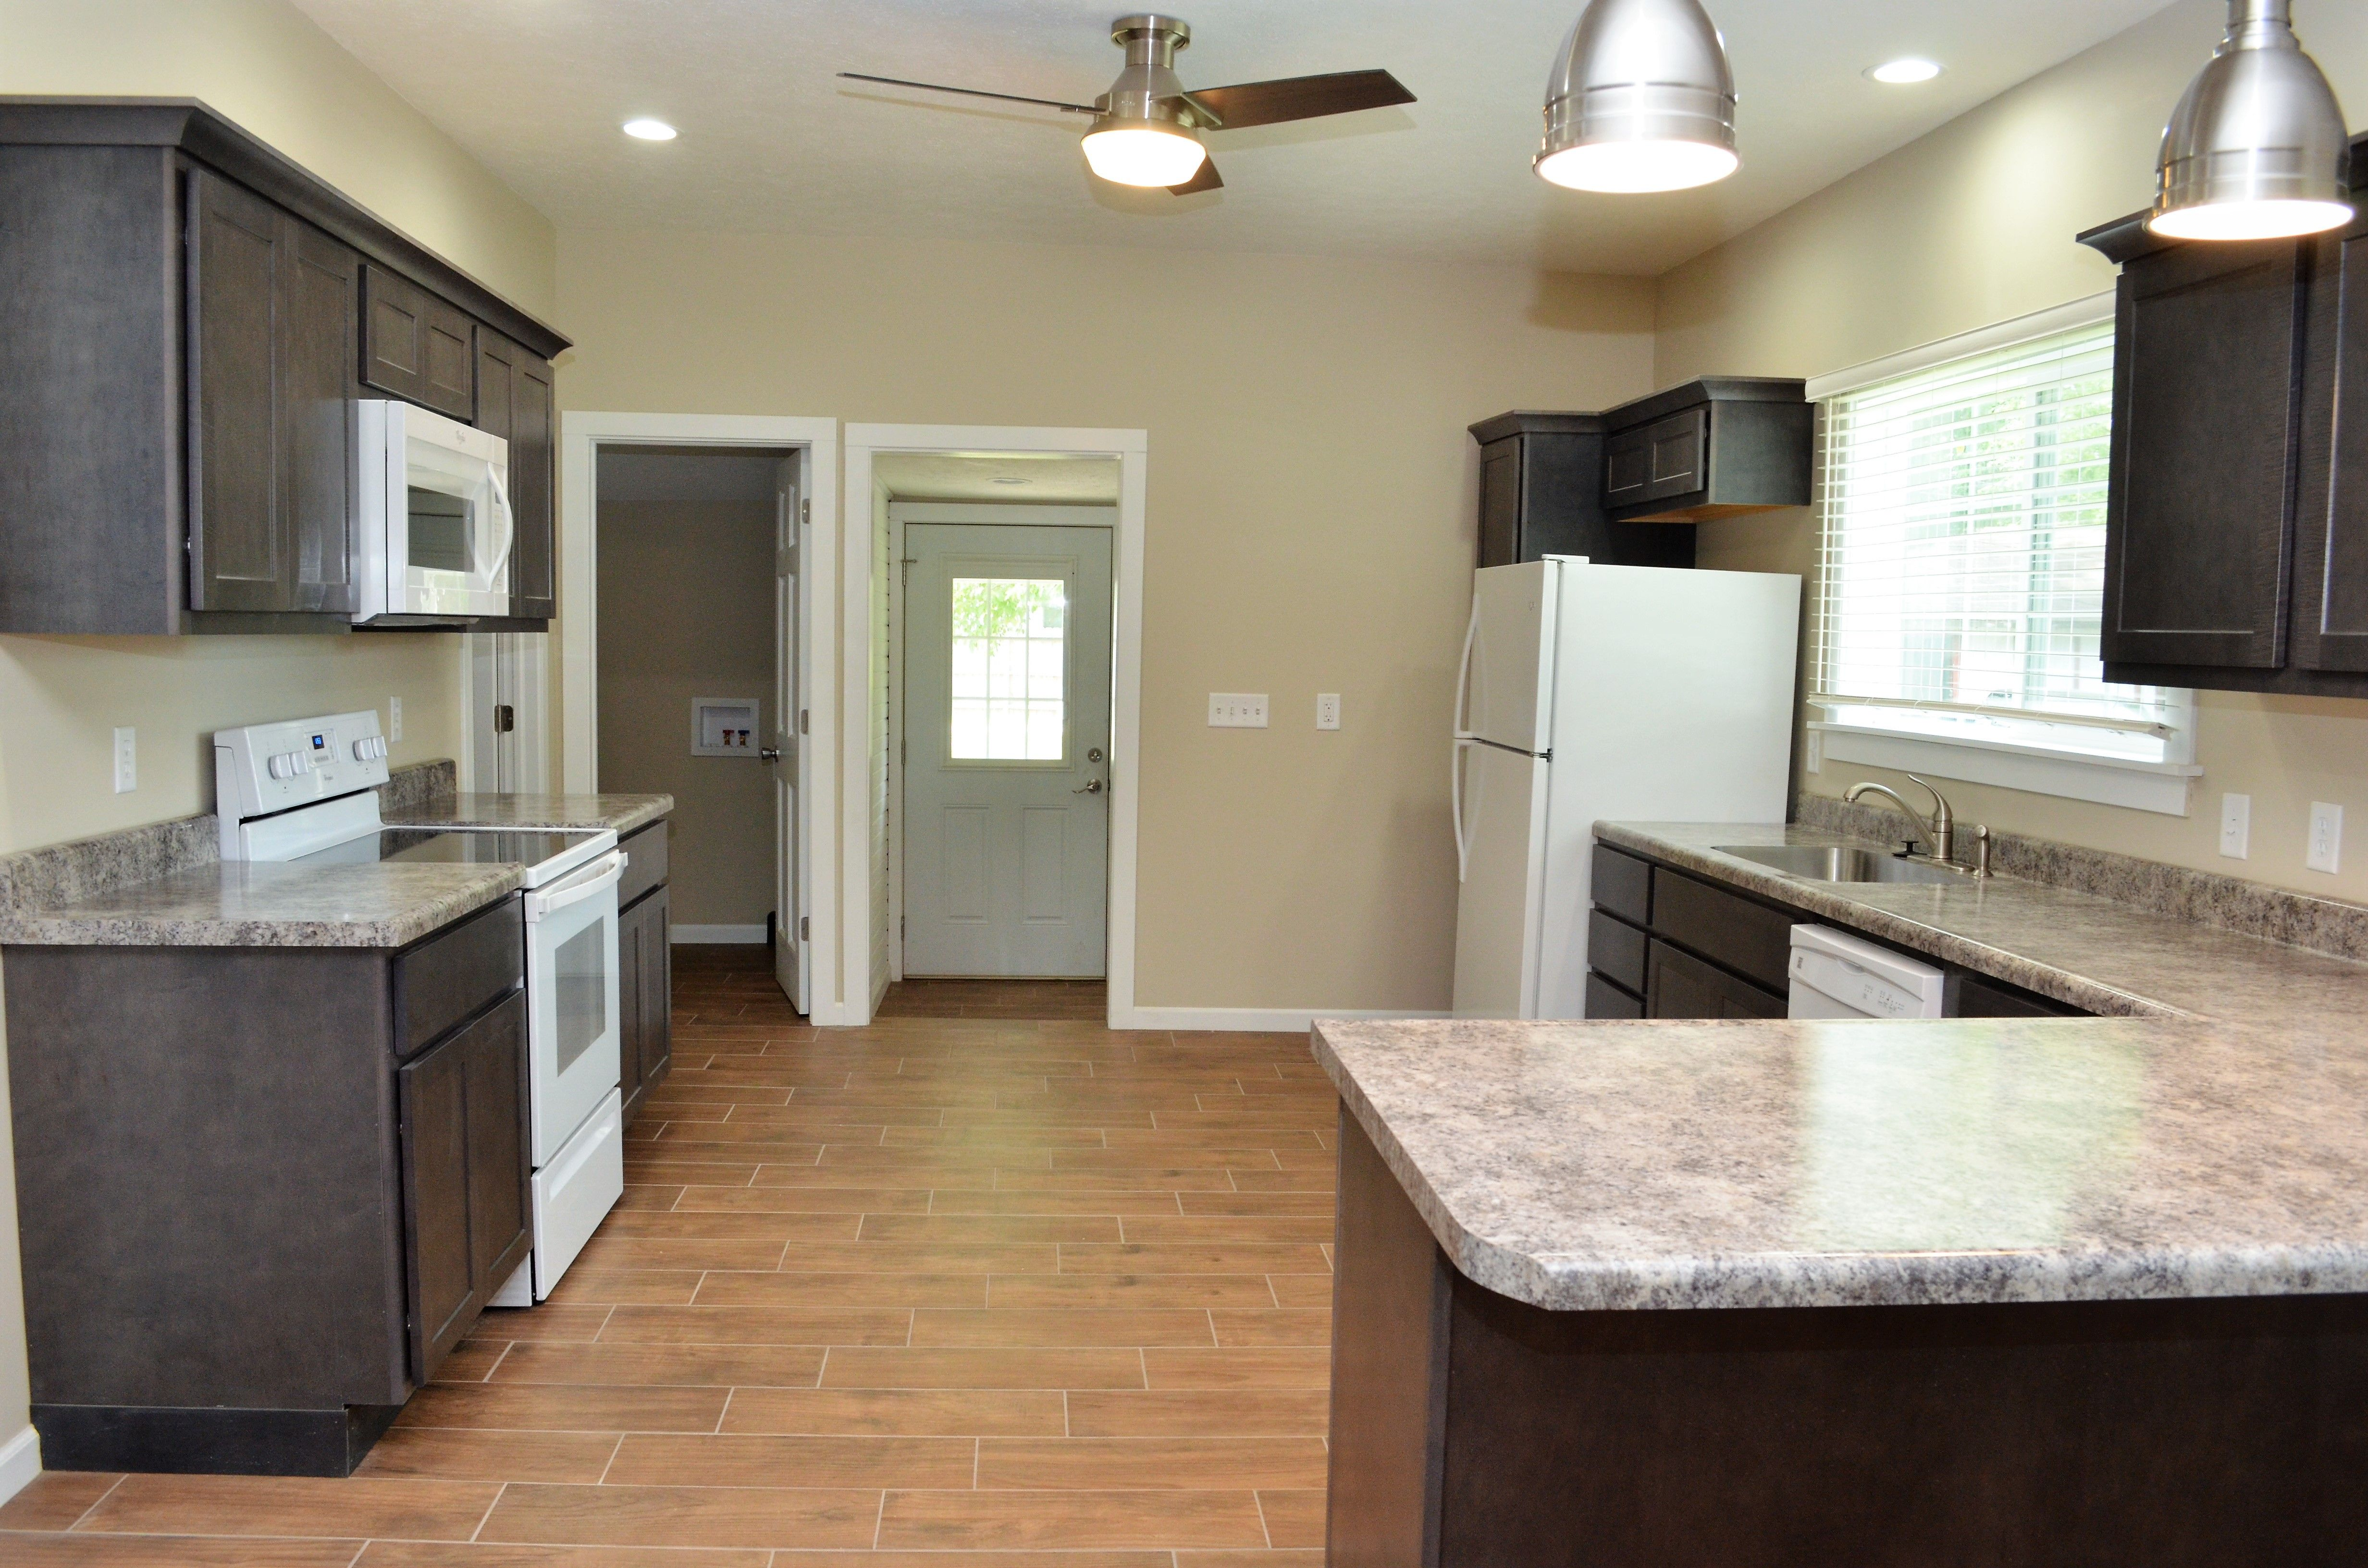 Haas Kitchen Cabinets Reviews - Iwn Kitchen